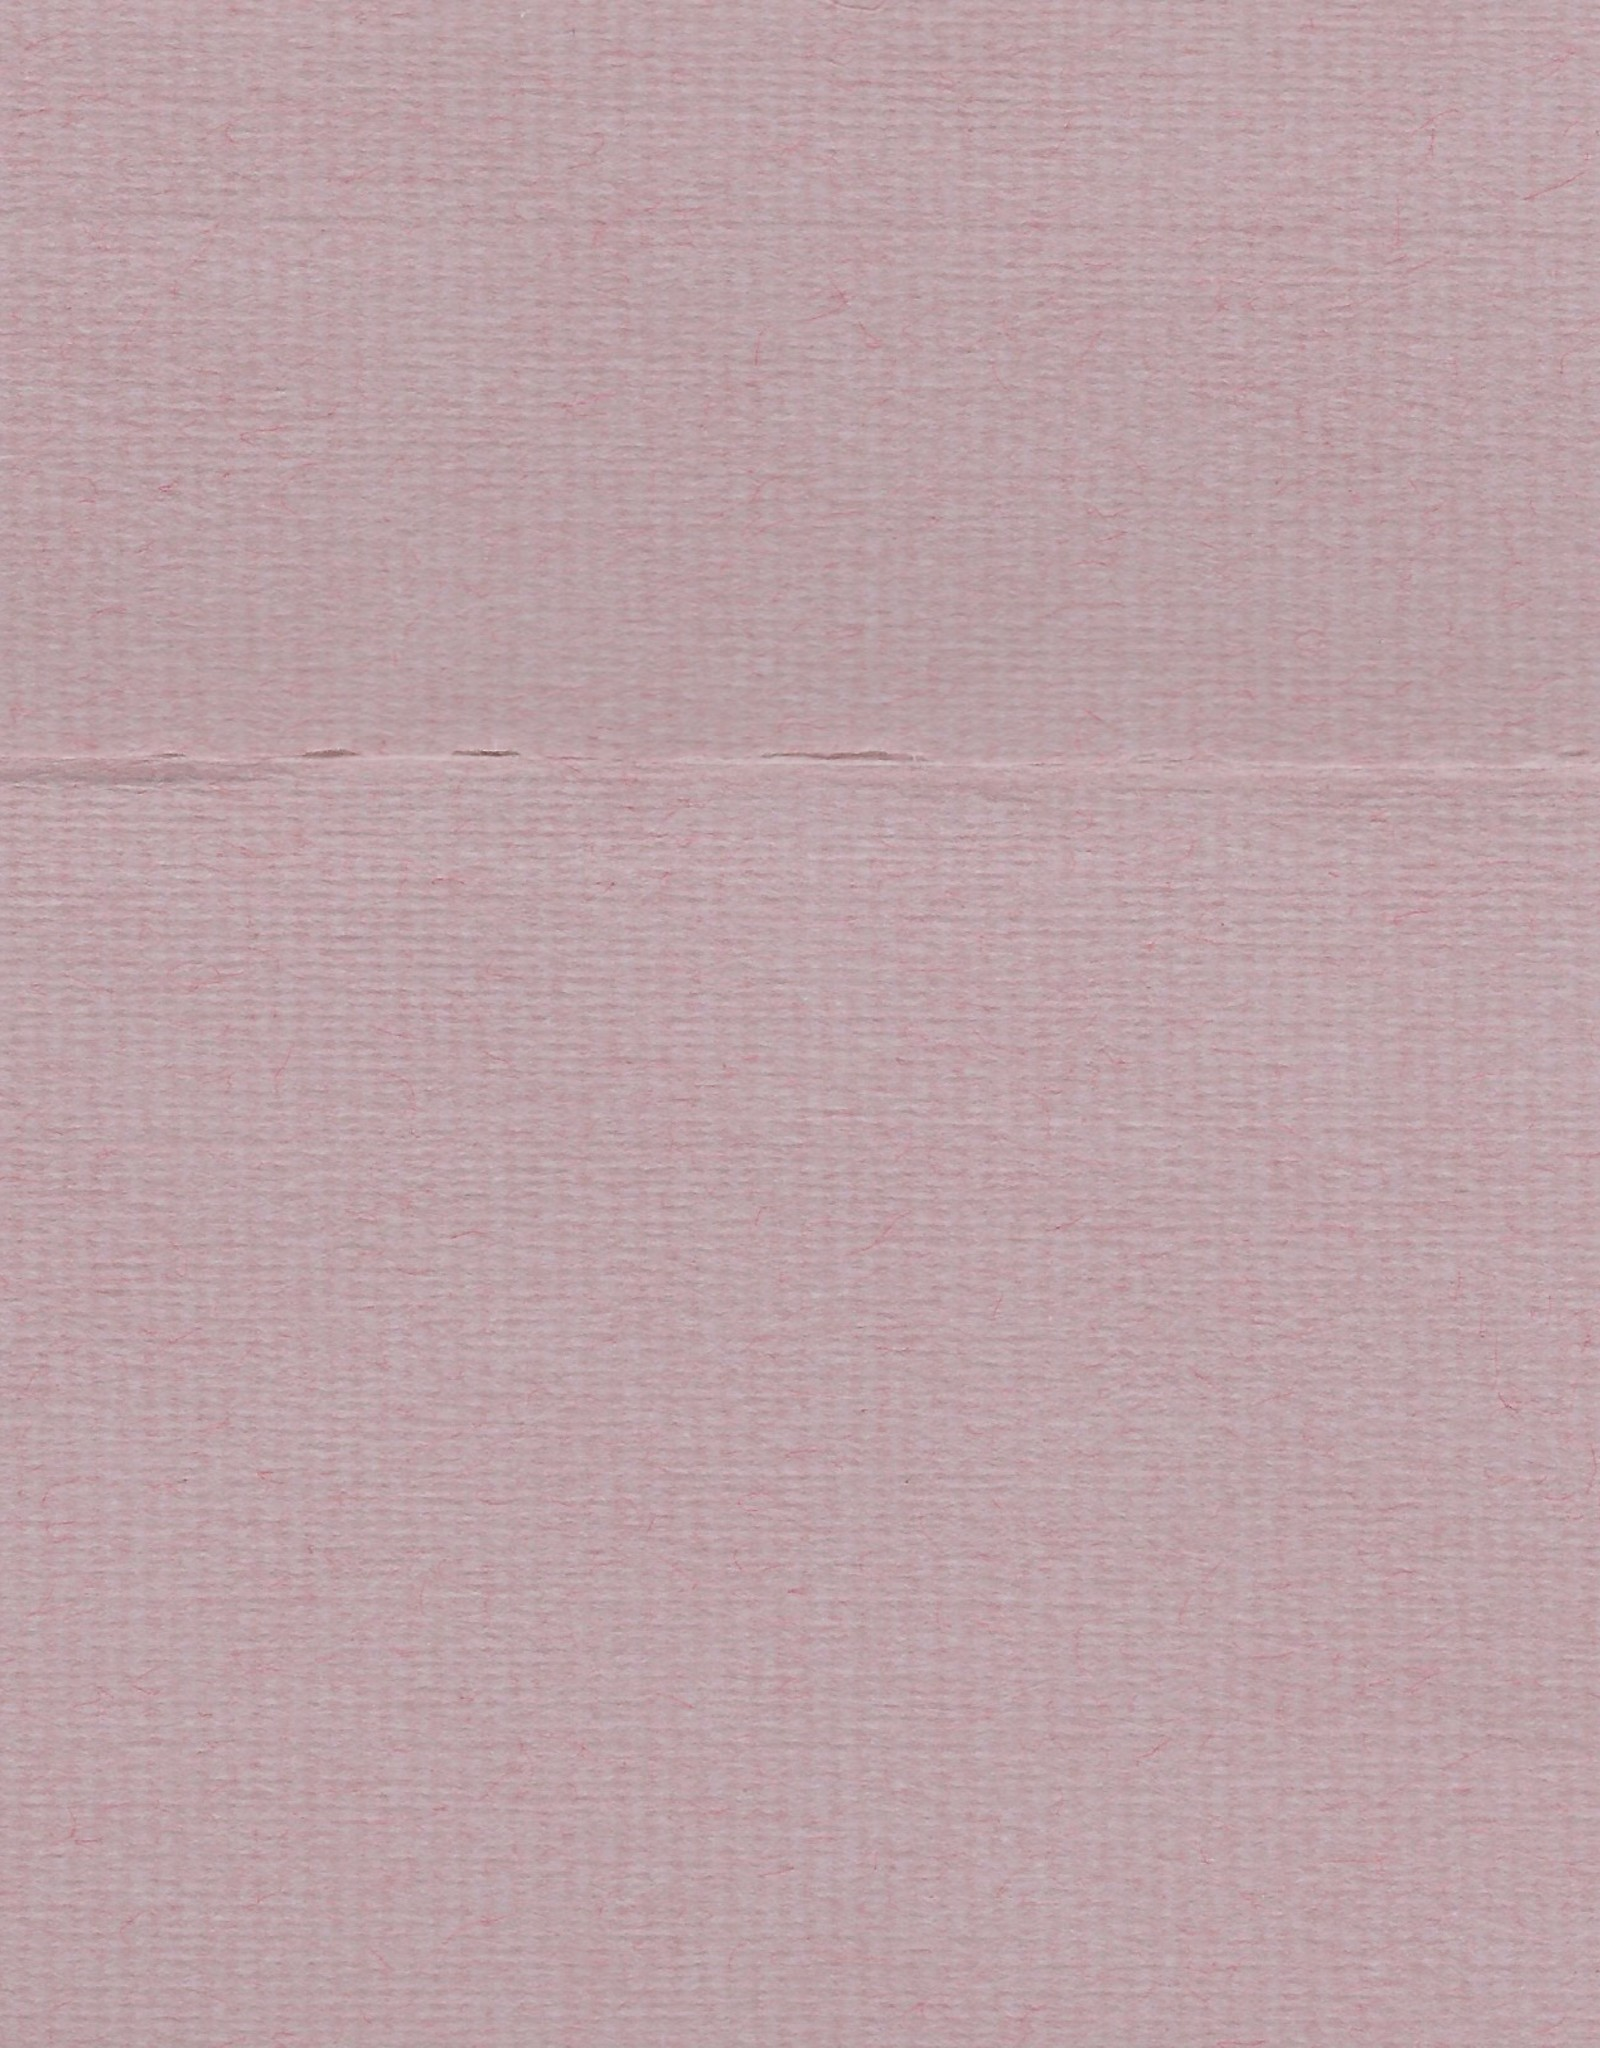 "Hahnemuhle Bugra, Antique Rose #314, 33"" x 41"", 130 gsm"